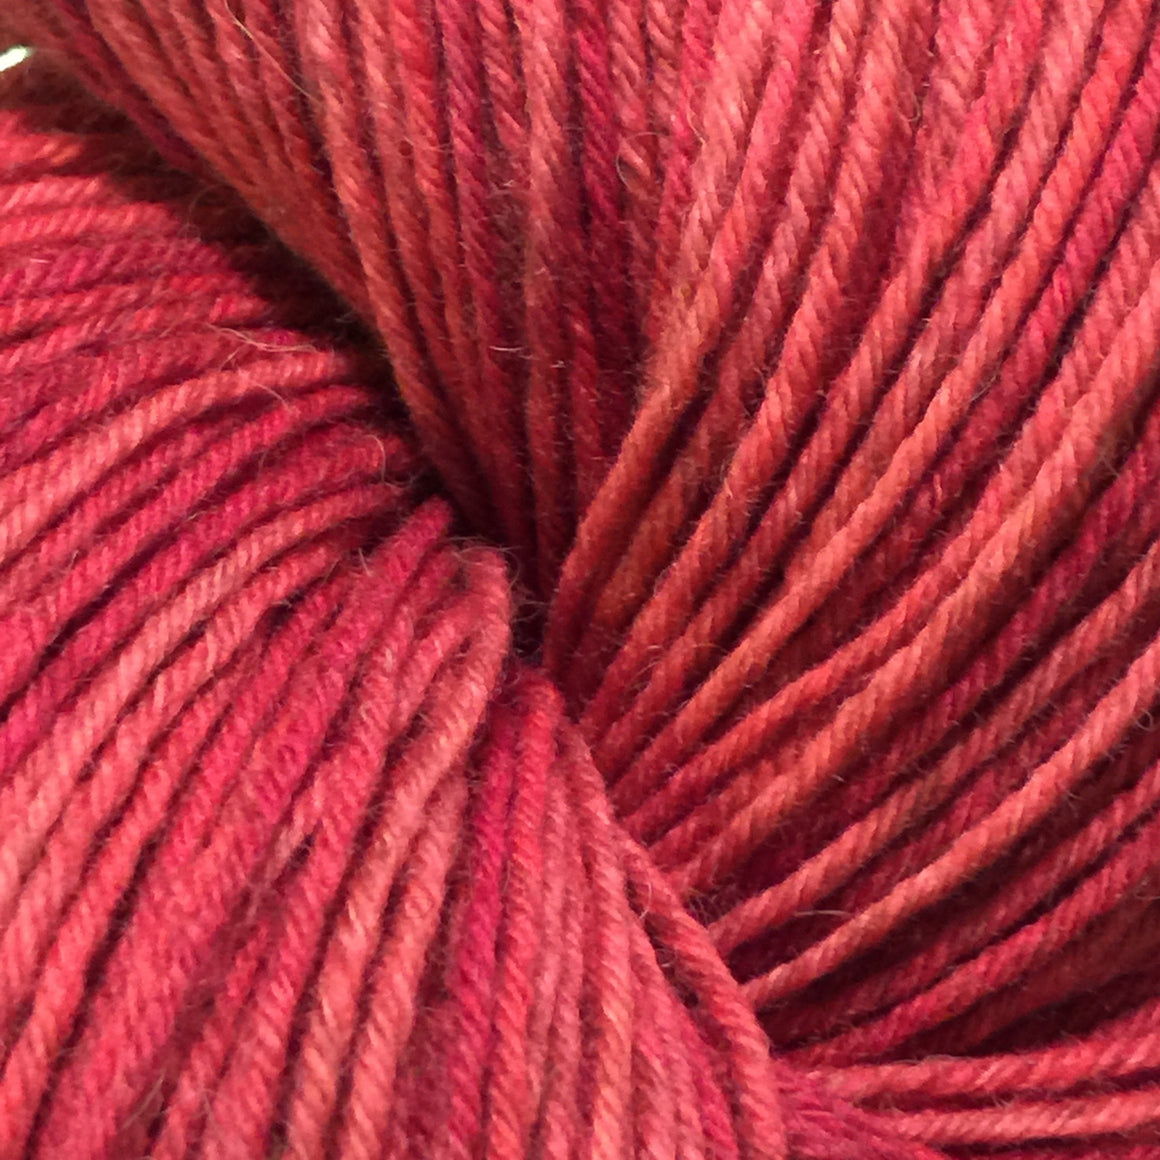 """Afternoon Delight"" are orange blush tones in a bison blend of fingering weight yarn"